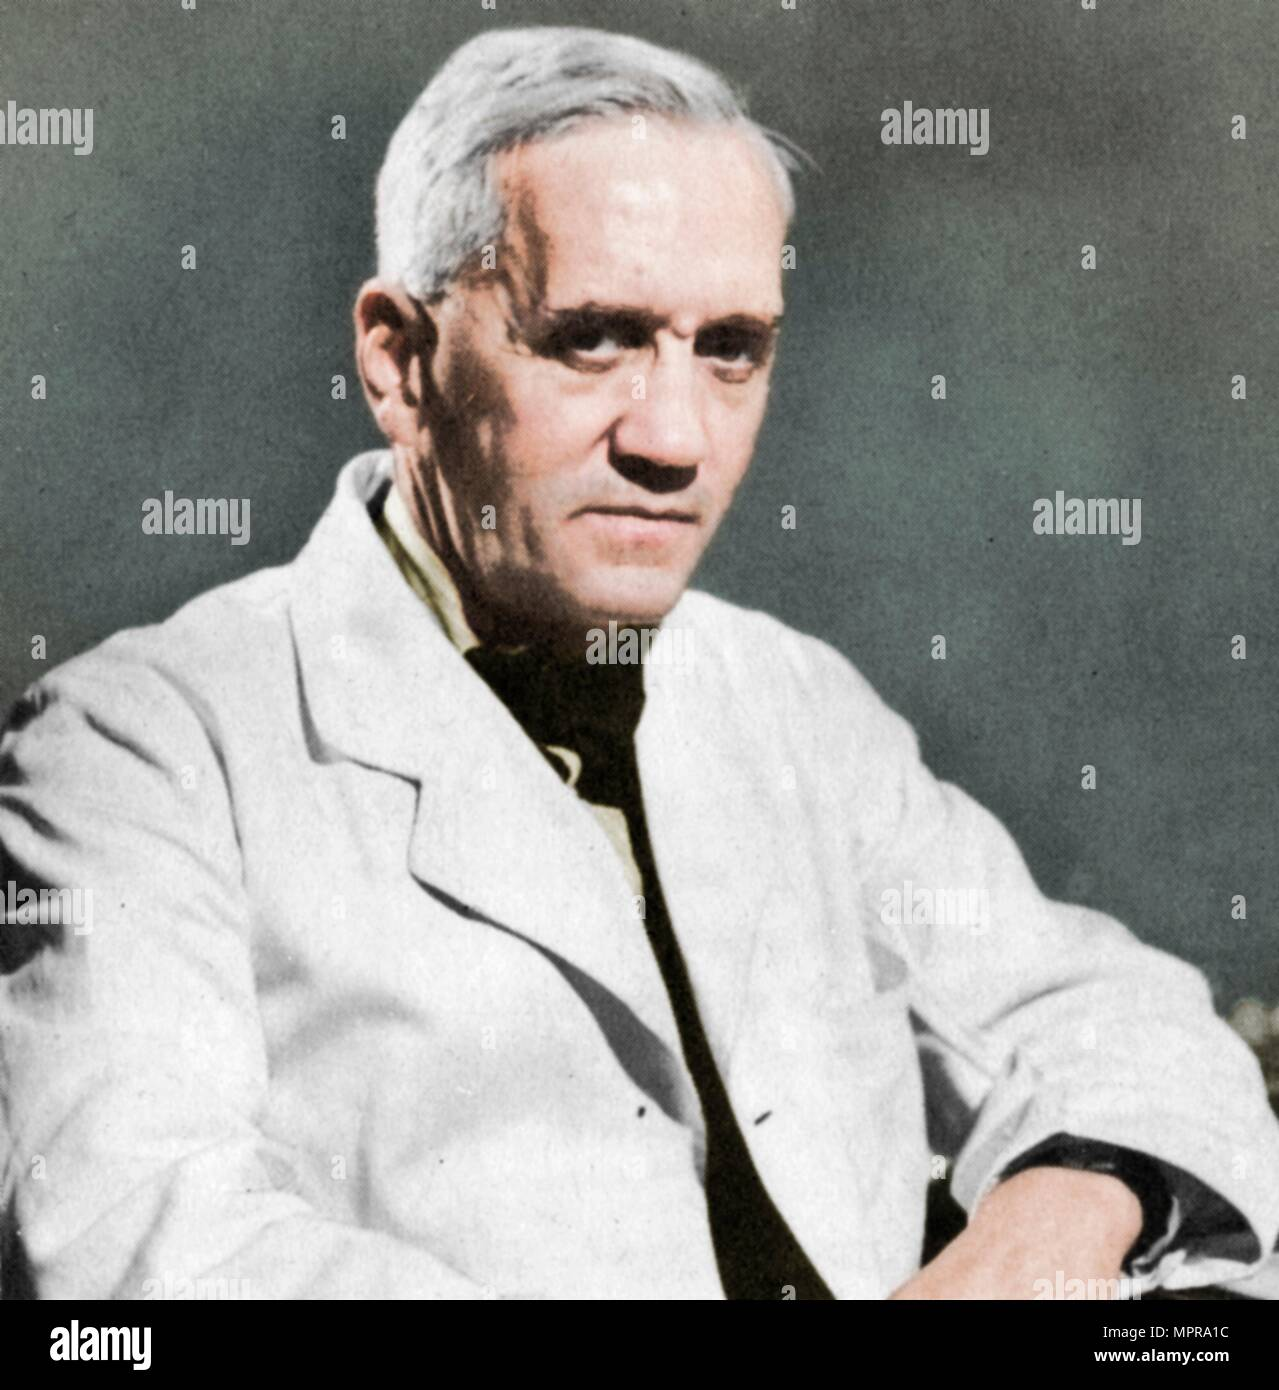 Alexander Fleming, bactériologiste écossais, c1930s. Artiste : Inconnu. Photo Stock